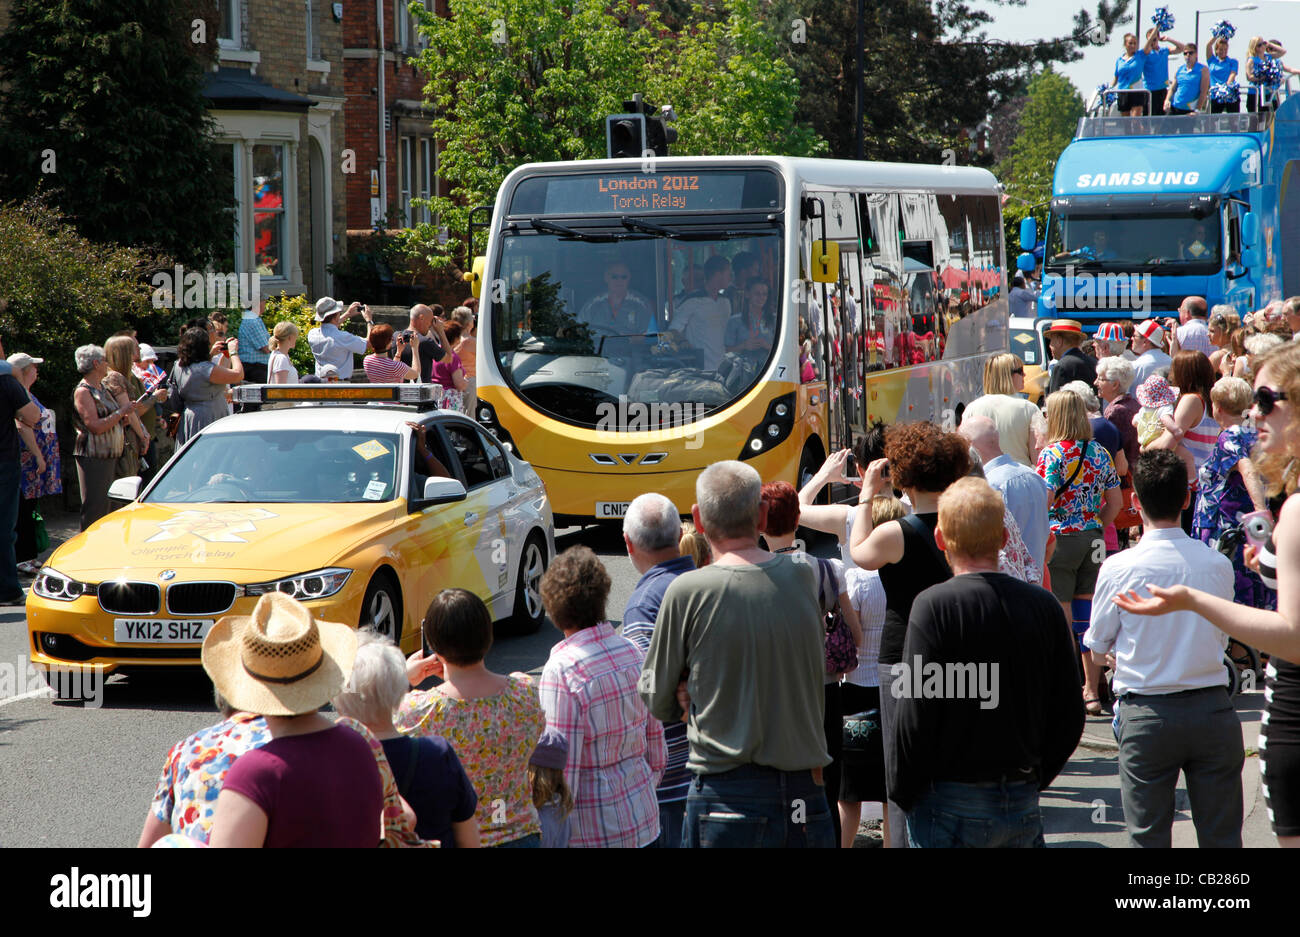 Wednesday, May 23rd 2012.  Swindon, Wiltshire, England, UK. Sponsors' coaches signal the imminent arrival of - Stock Image